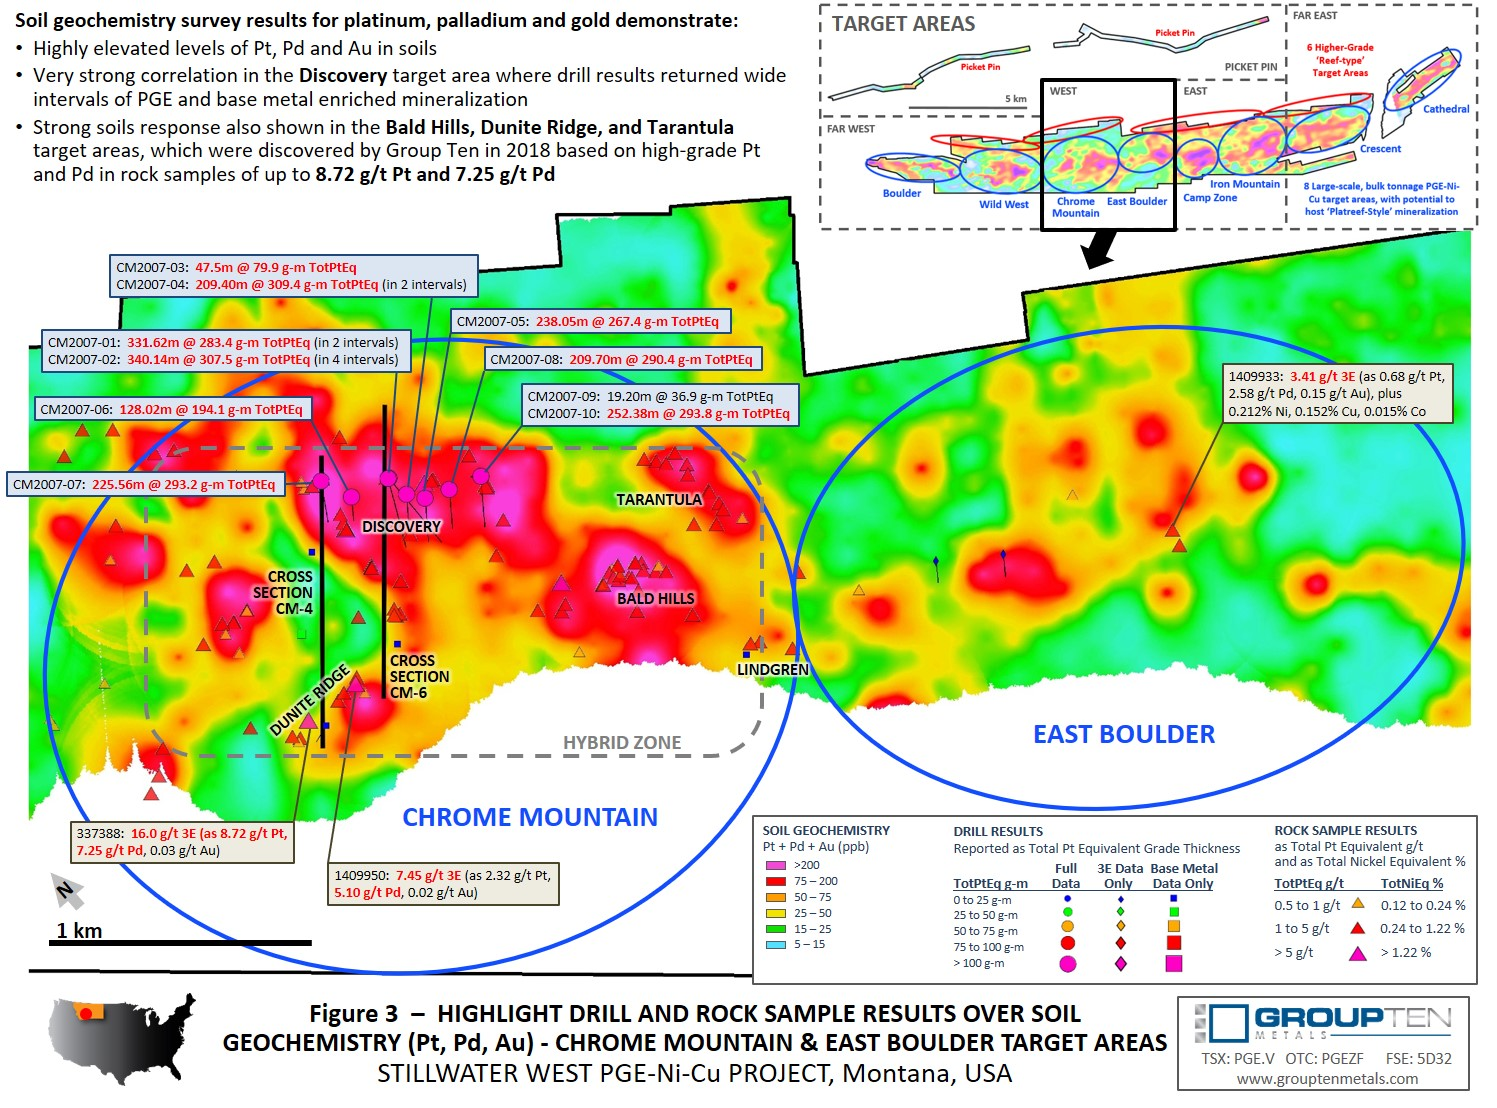 Figure 3  –  Highlight Drill and Rock Sample Results Over Soil Geochemistry (Pt, Pd, Au) - Chrome Mountain & East Boulder Target Areas